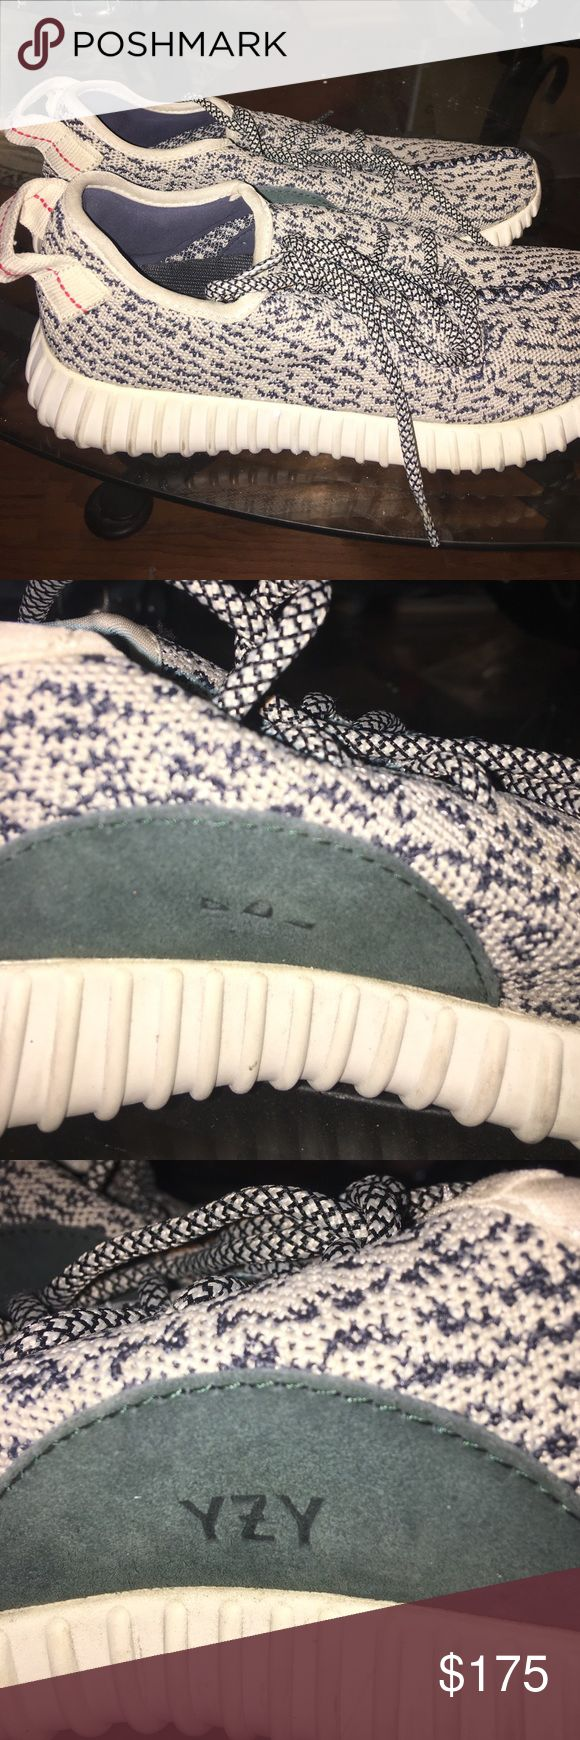 Yeezy Boost 350 Authentic Turtle Dove Yeezy Boost 350 Turtle Dove barely worn- like new authentic & negotiable!!! Adidas Shoes Sneakers